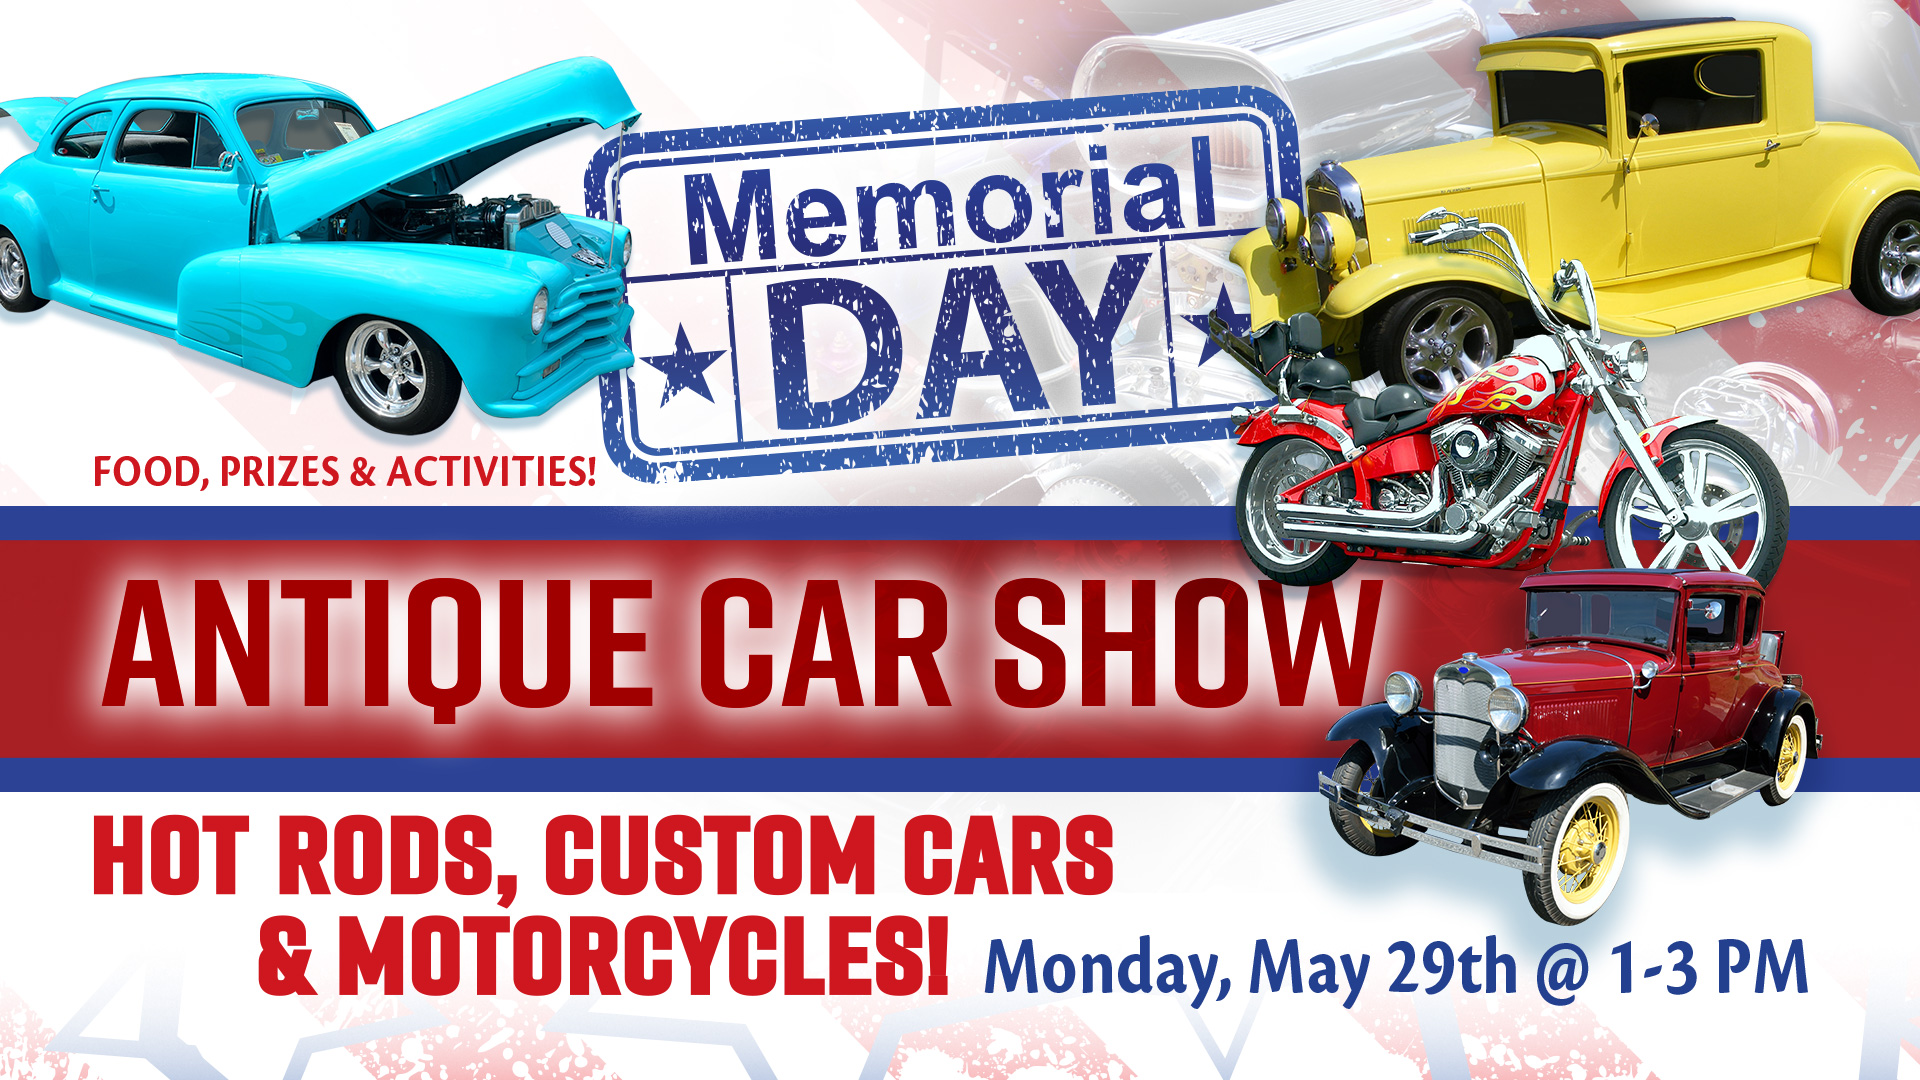 Memorial Day Antique Car Show - May 29, 2017